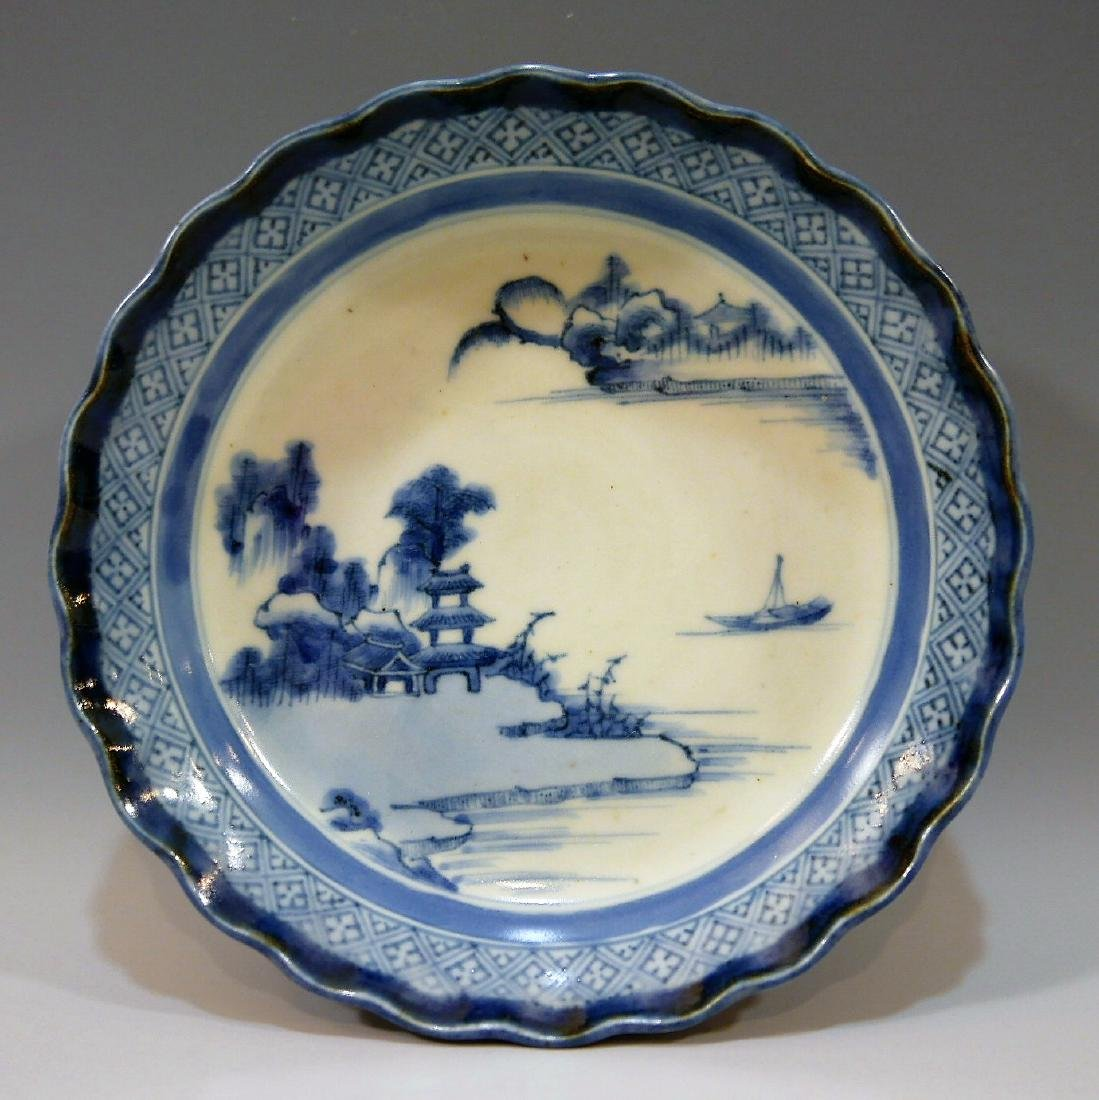 CHINESE ANTIQUE BLUE WHITE PORCELAIN PLATE - 18TH